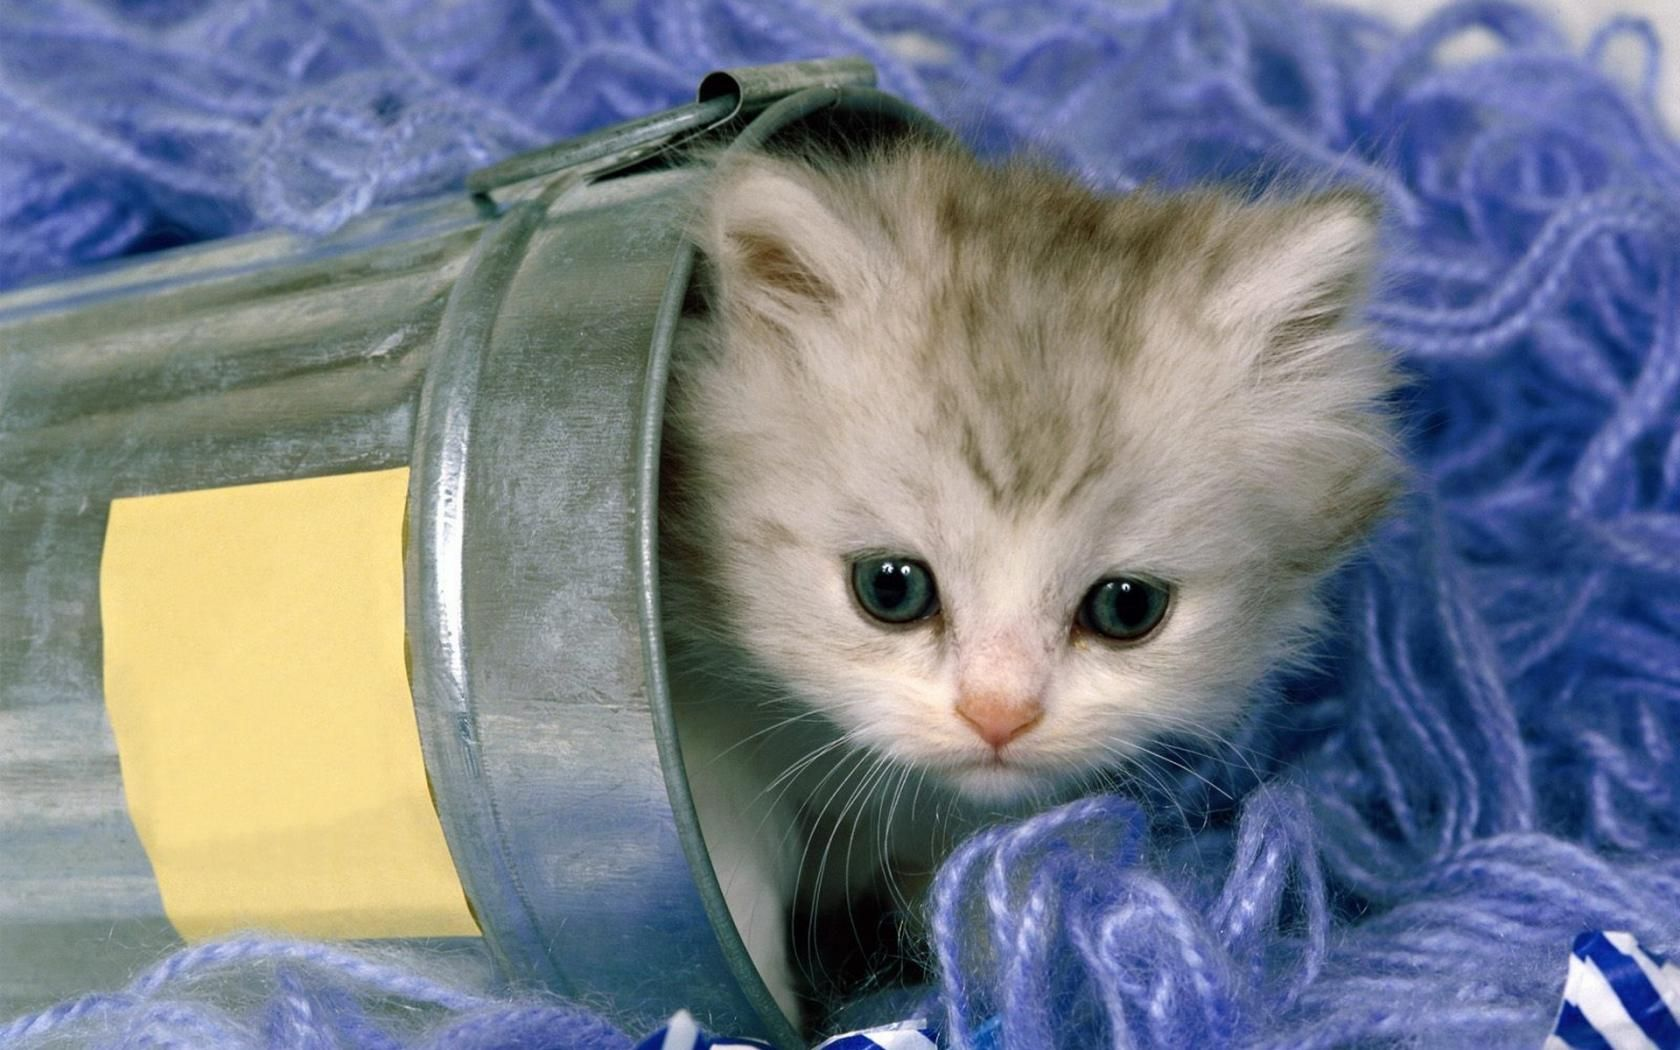 My Punk Brother Will Never Find Me In This Hiding Spot Kittens Cutest Cute Cats Kitten Wallpaper